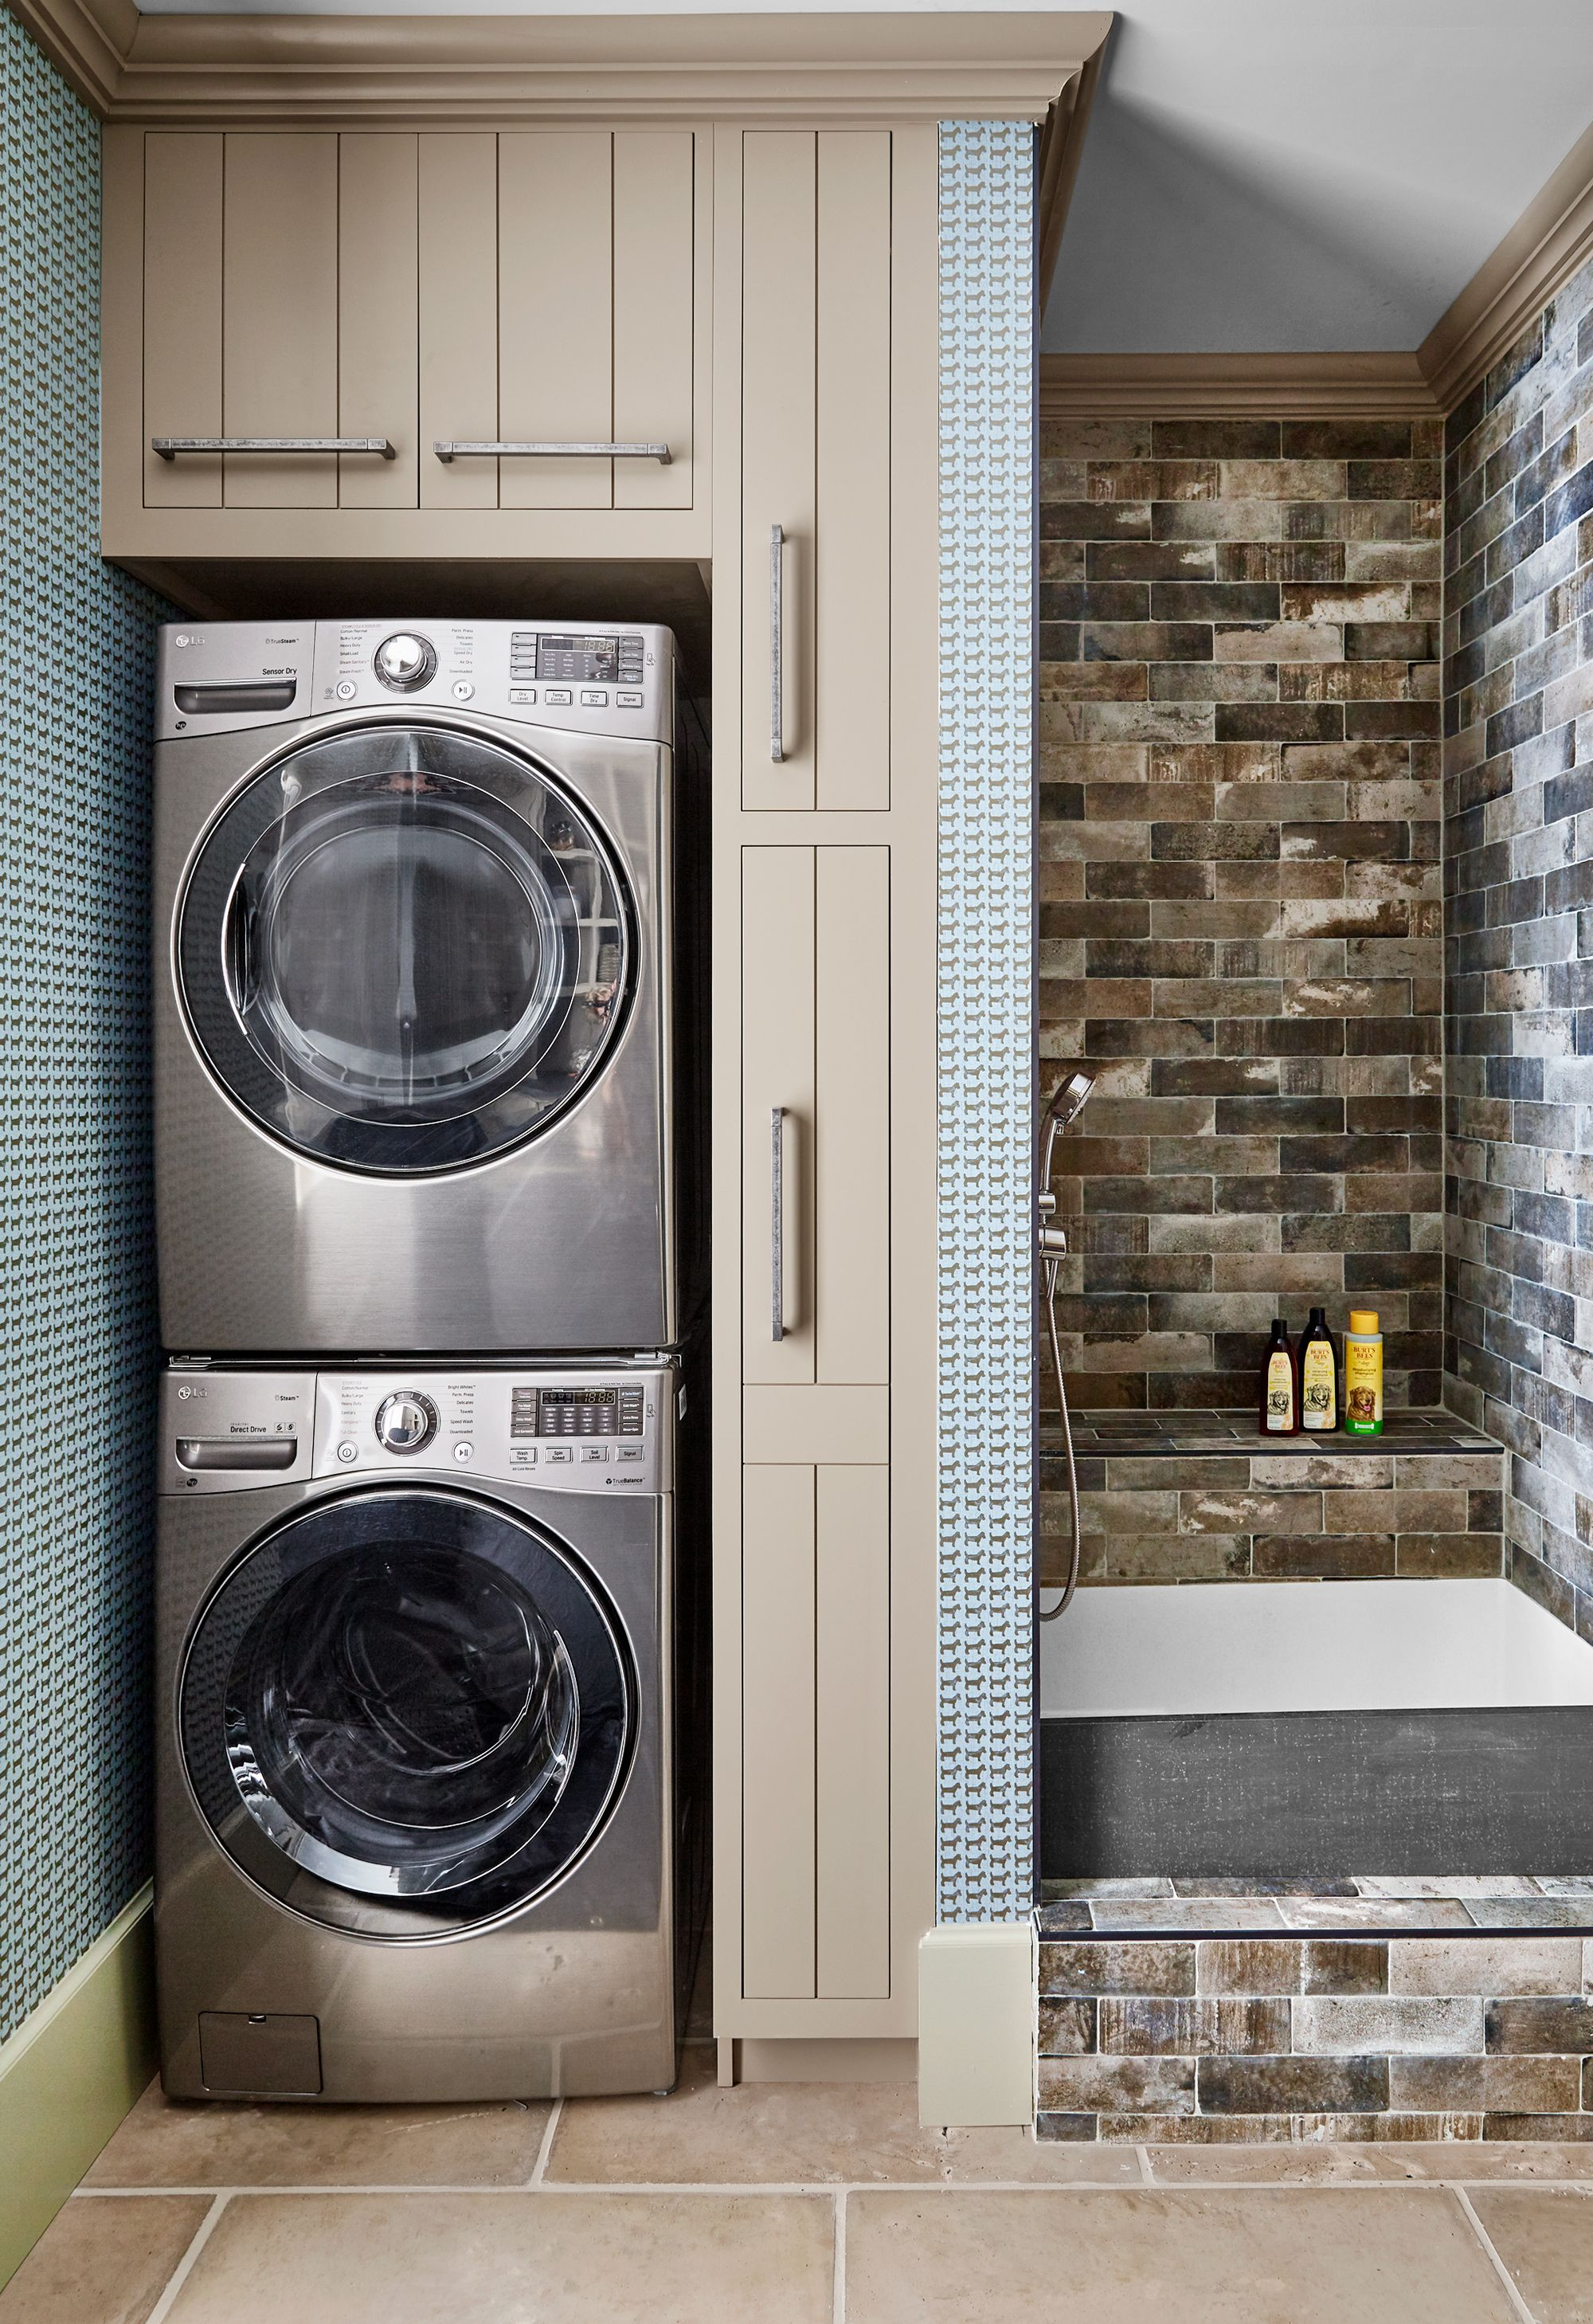 25 Small Laundry Room Ideas - Small Laundry Room Storage Tips